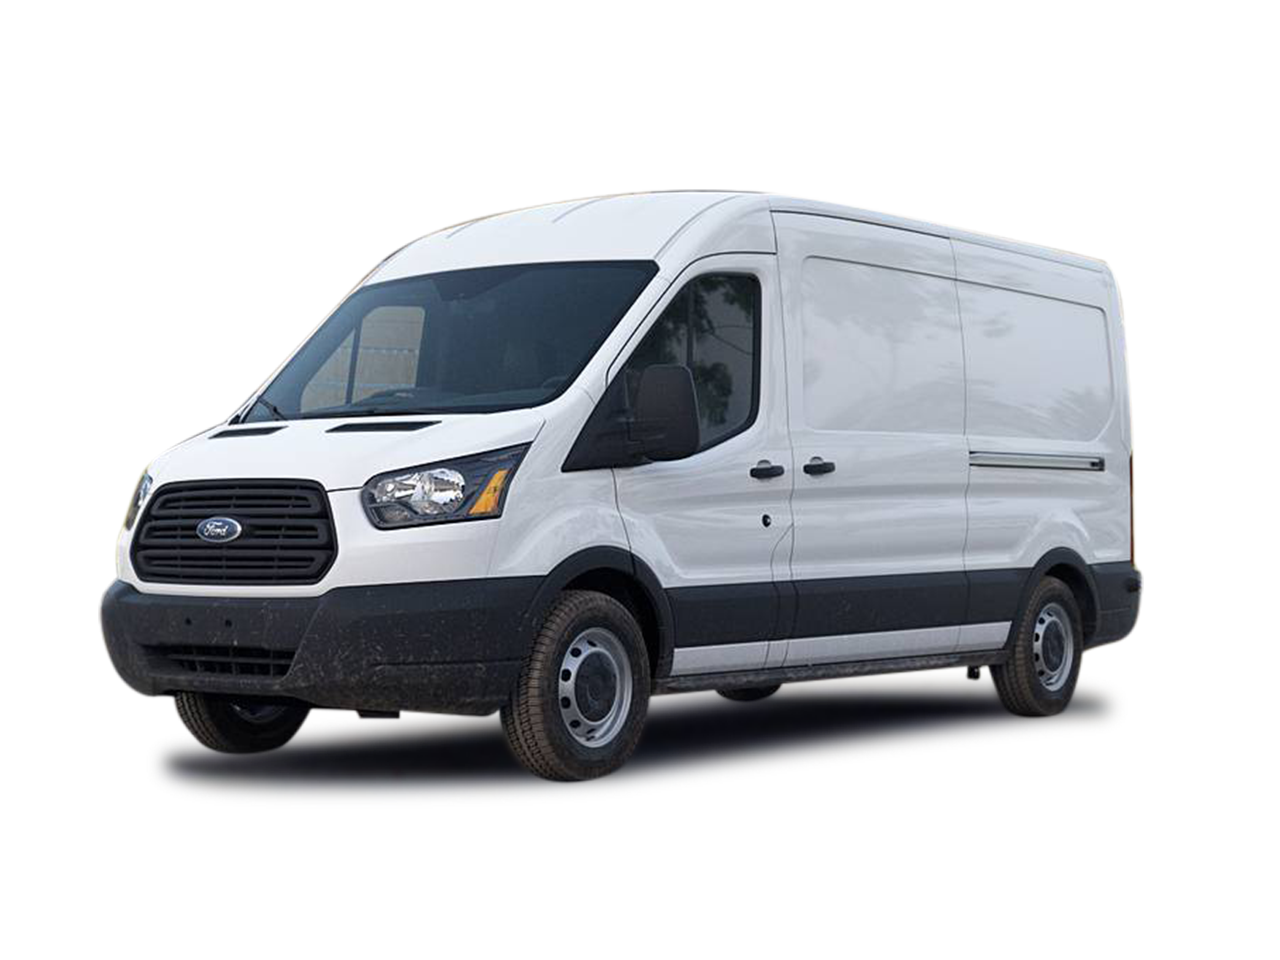 FORD TRANSIT (15 Plate)